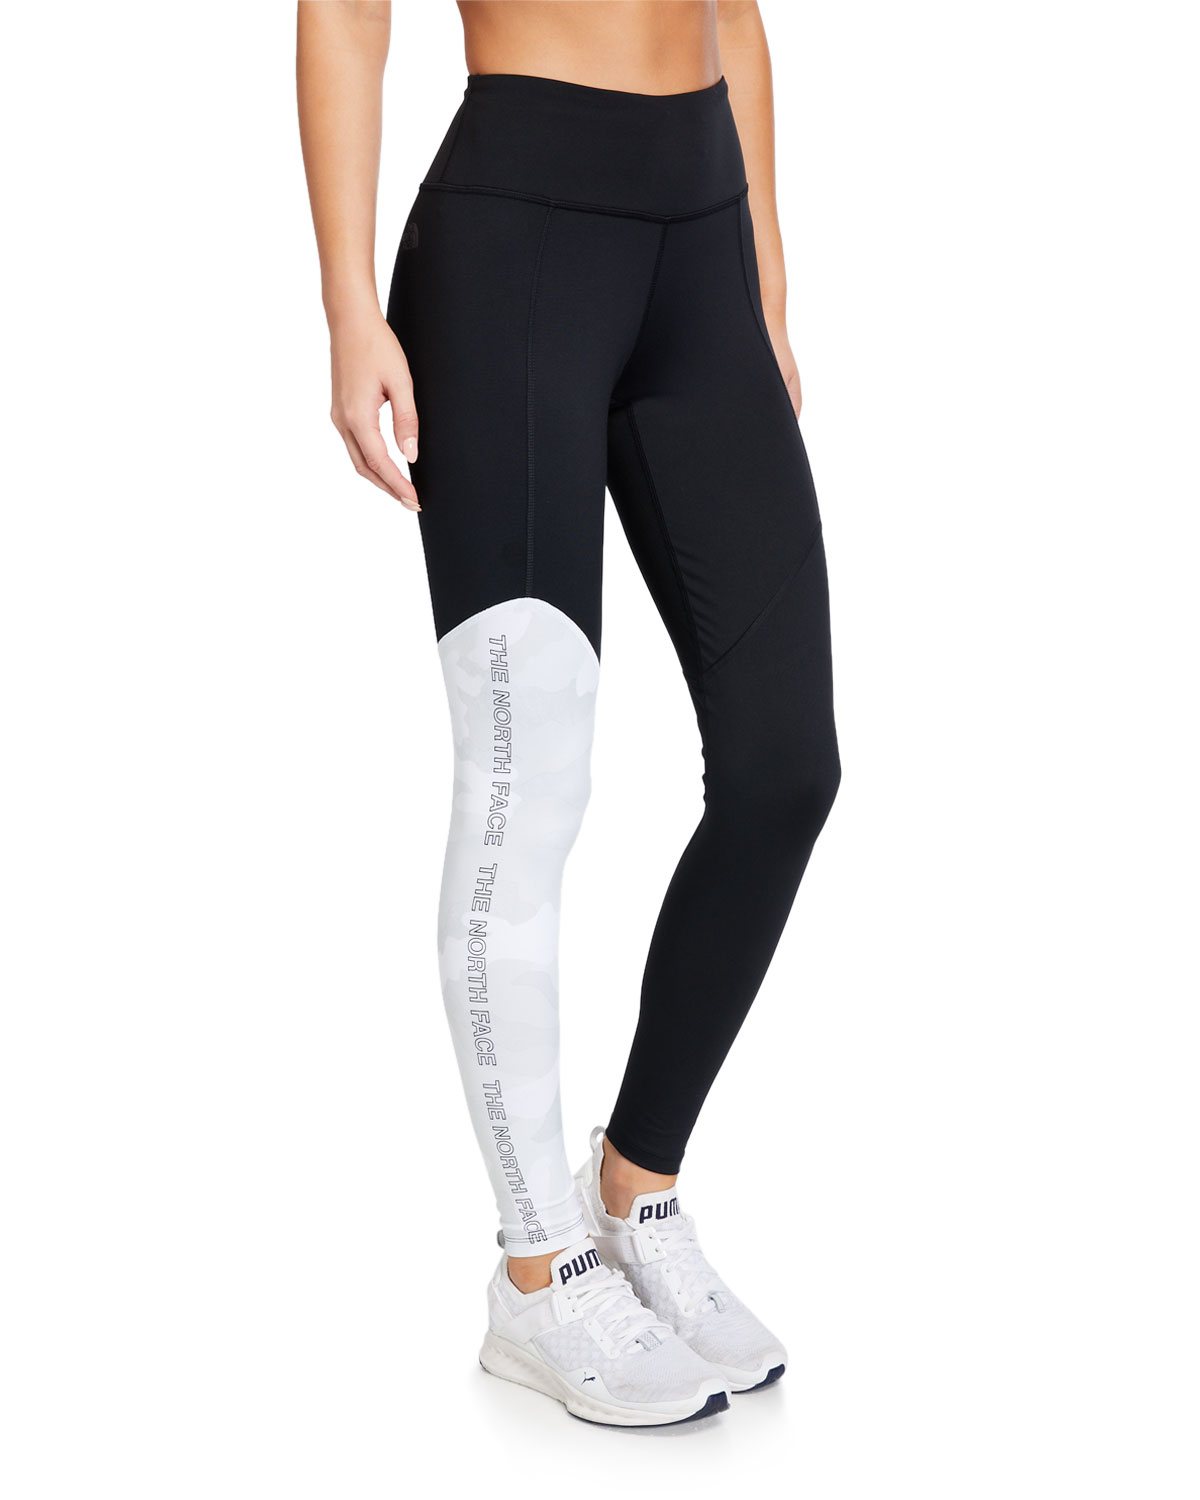 The North Face Pants INFINITY MID-RISE TRAINING TIGHTS